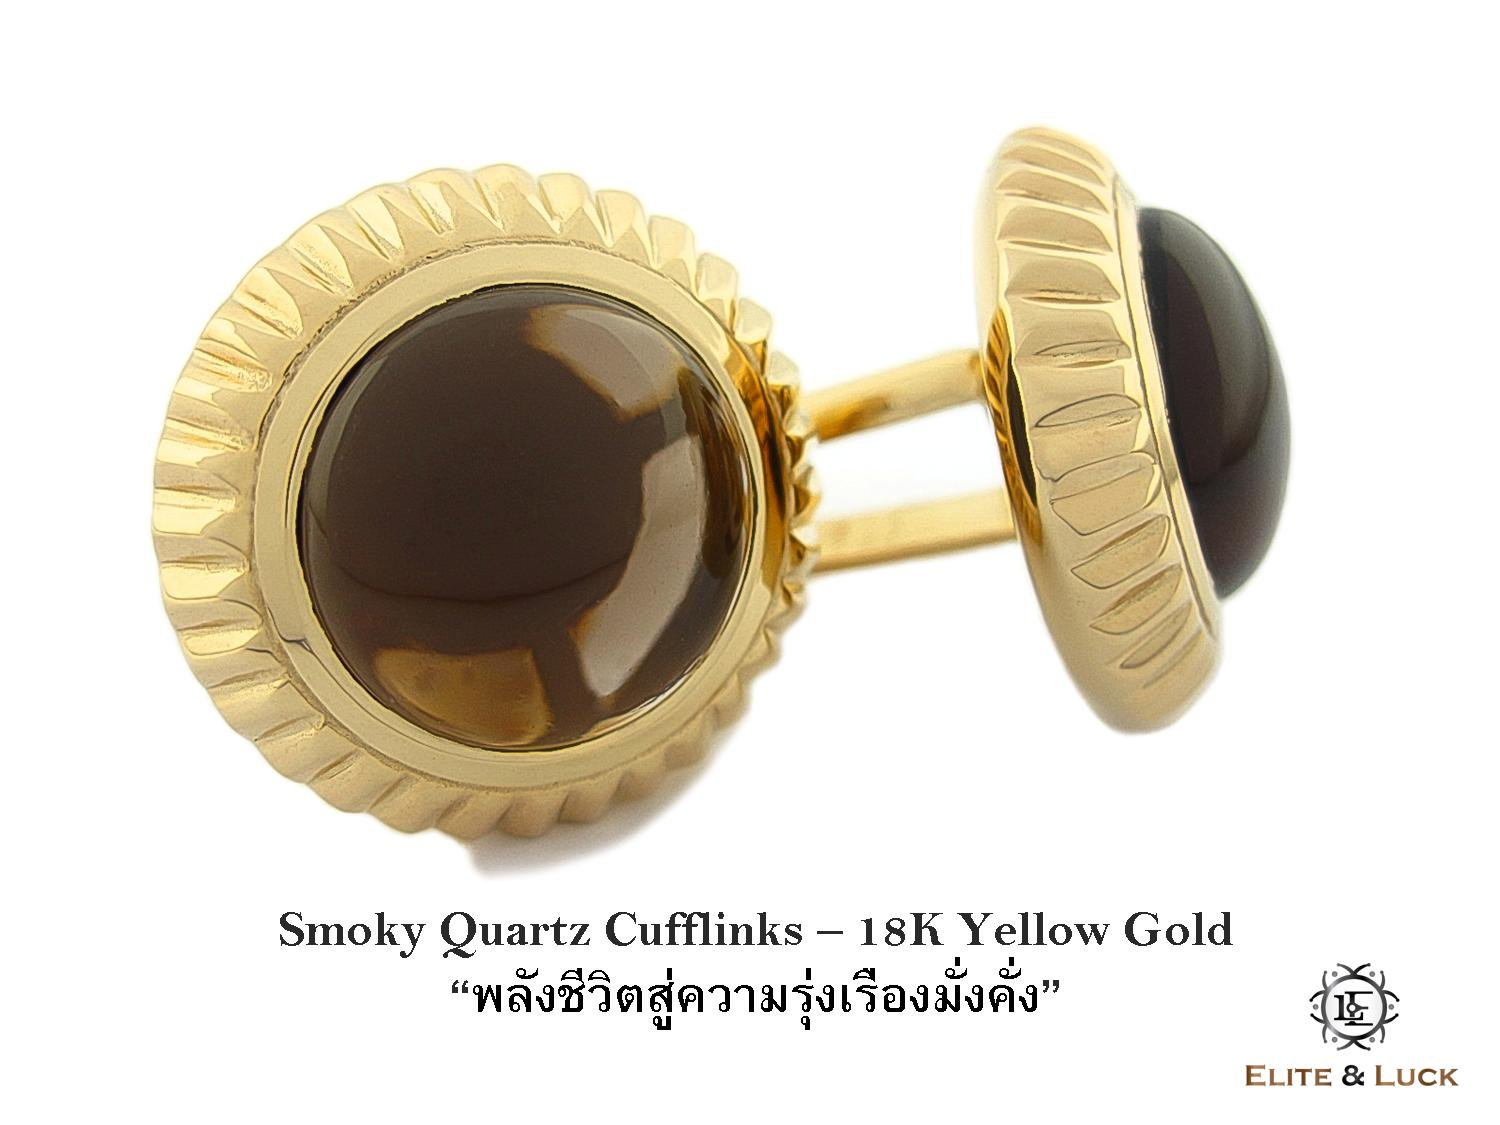 Smoky Quartz Sterling Silver Cufflinks สี 18K Yellow Gold รุ่น Elegant